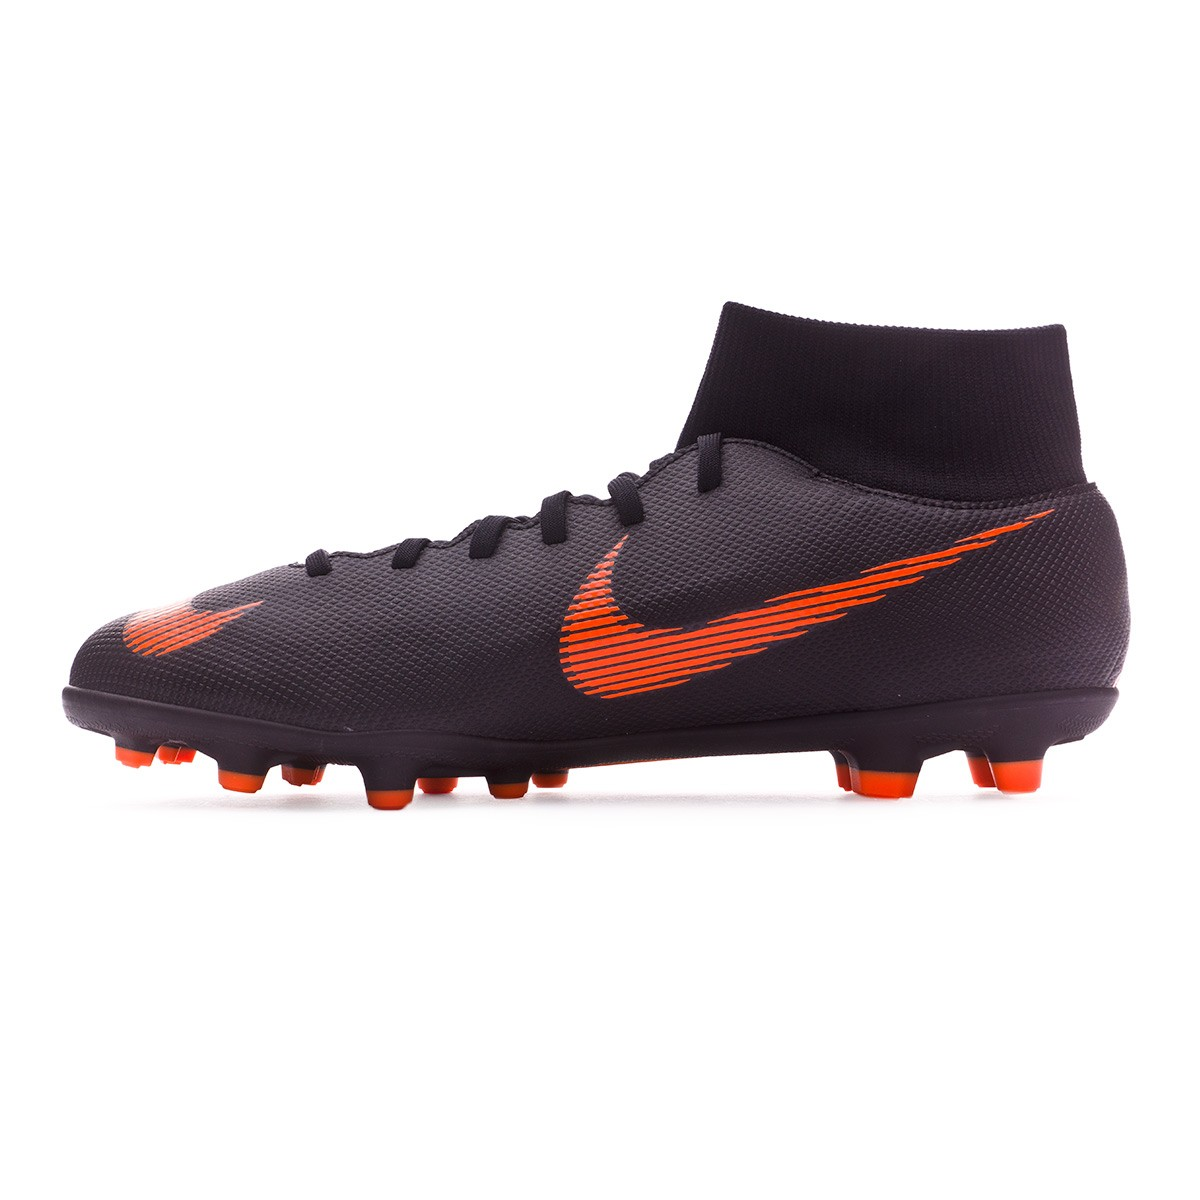 6b4b02214a647 Chuteira Nike Mercurial Superfly VI Club MG Black-Total orange-White - Loja  de futebol Fútbol Emotion